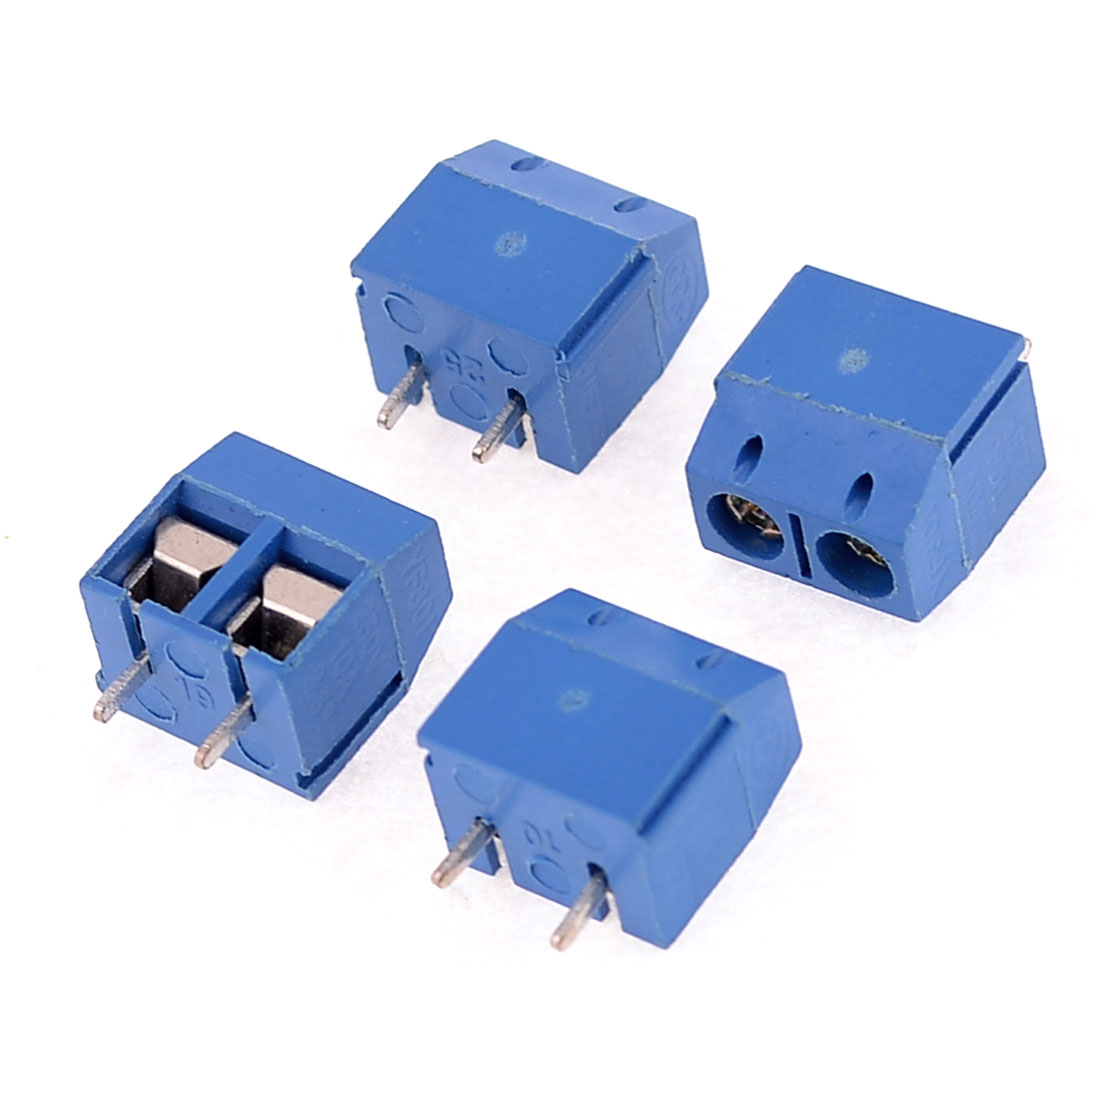 4 Pcs 5mm Pitch PCB Screw Teminal Blocks Connectors AC 250V 10A